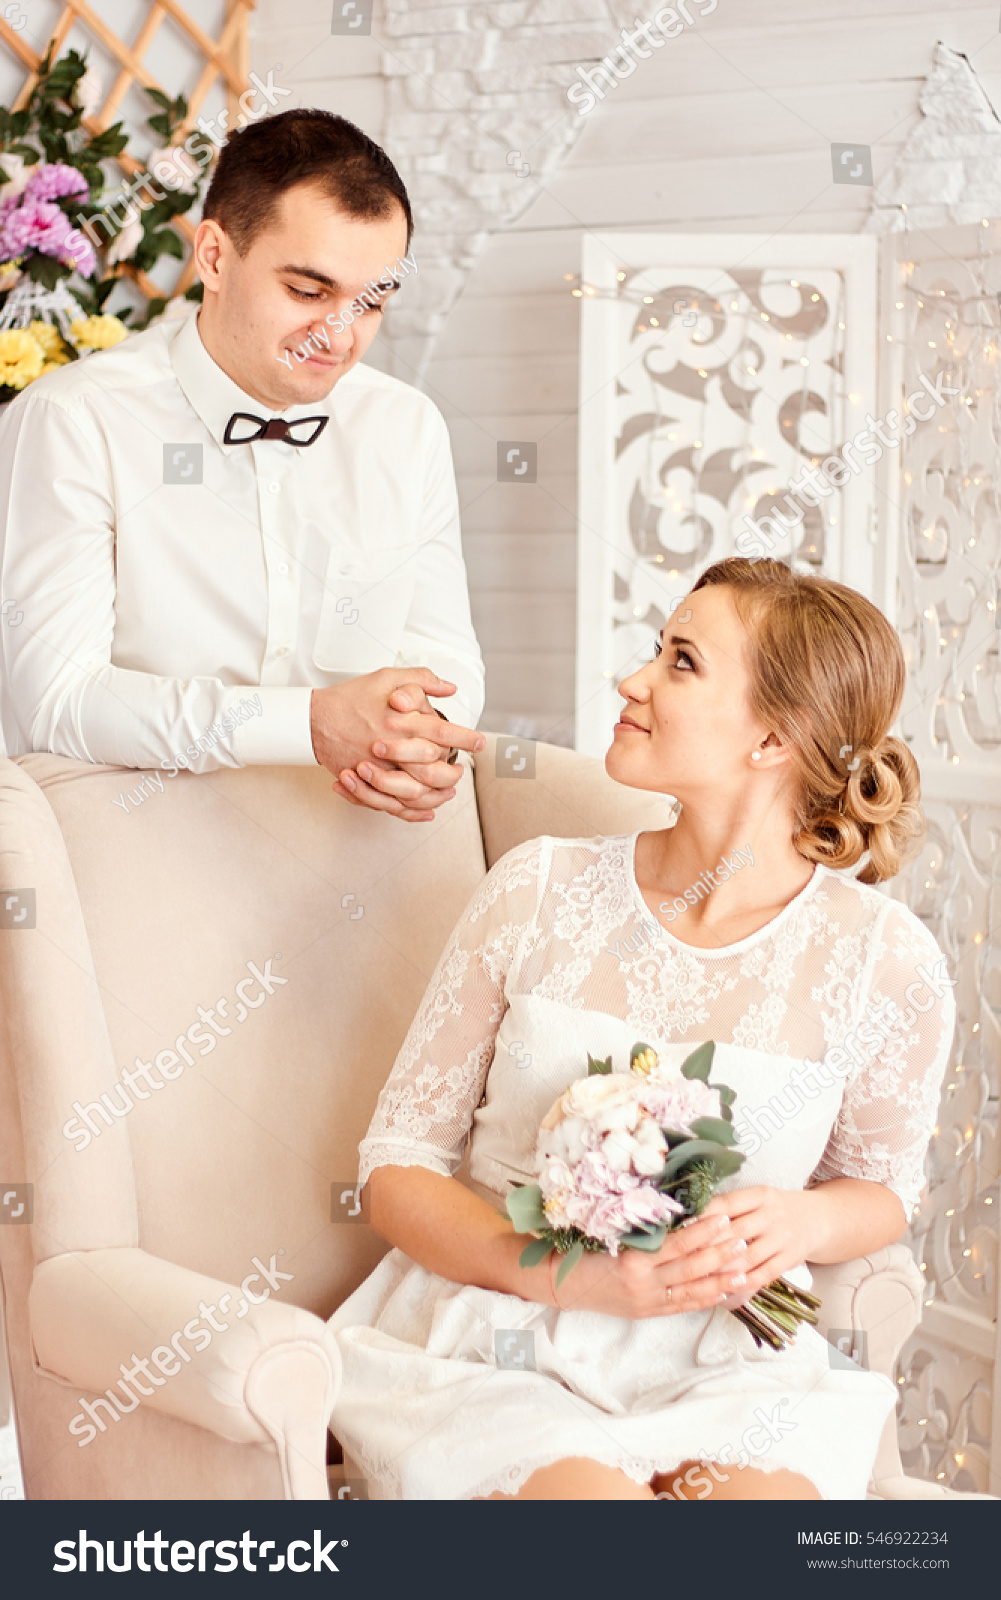 The Bride And Groom On Background Of Christmas Wallpaper Blonde Sitting In Armchair